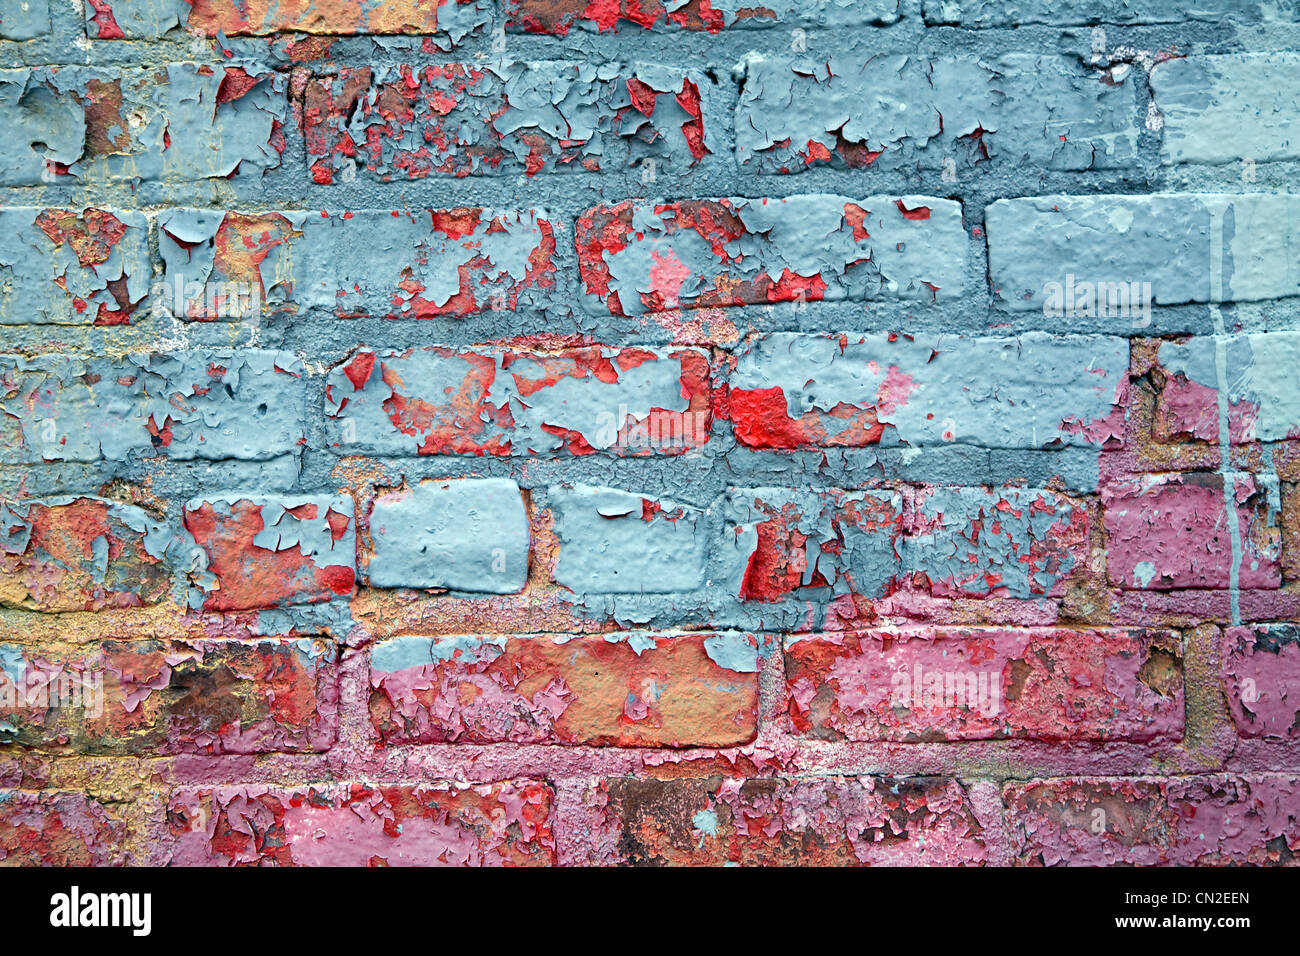 Colorful Peeling Paint on Brick Wall - Stock Image